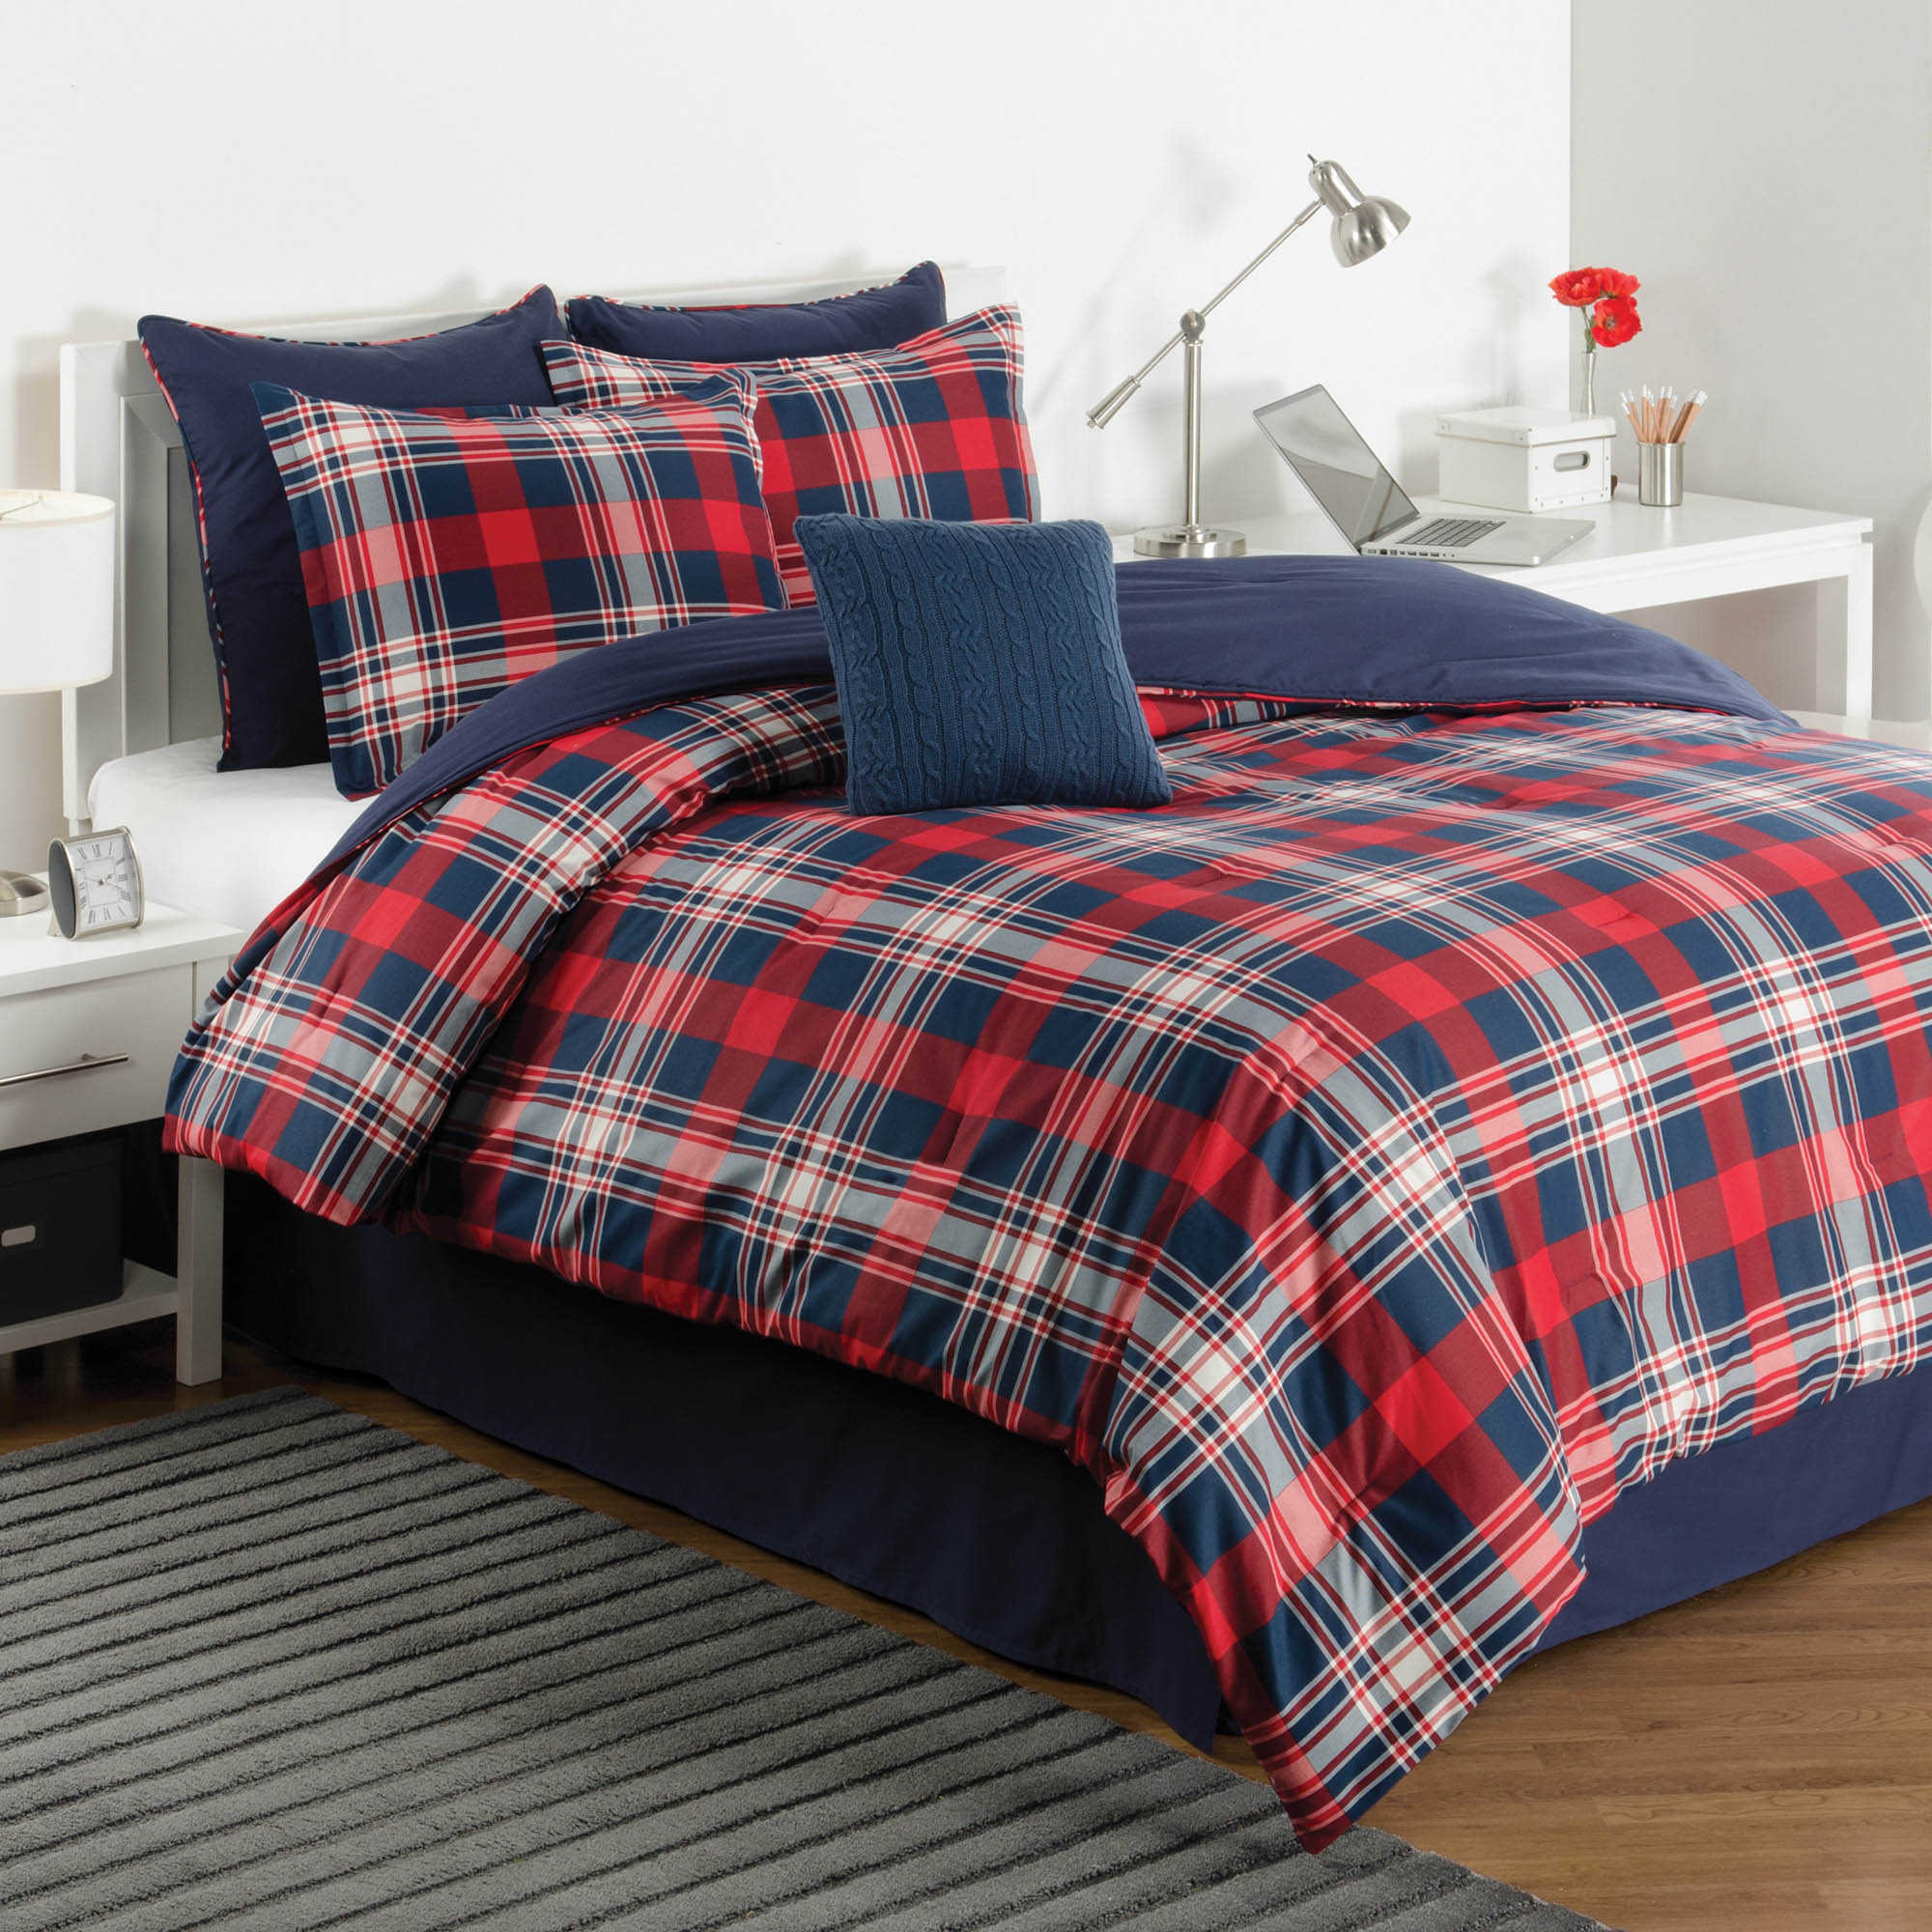 Exciting plaid comforter with rugs and wooden floor plus headboard and sidetable also pillows